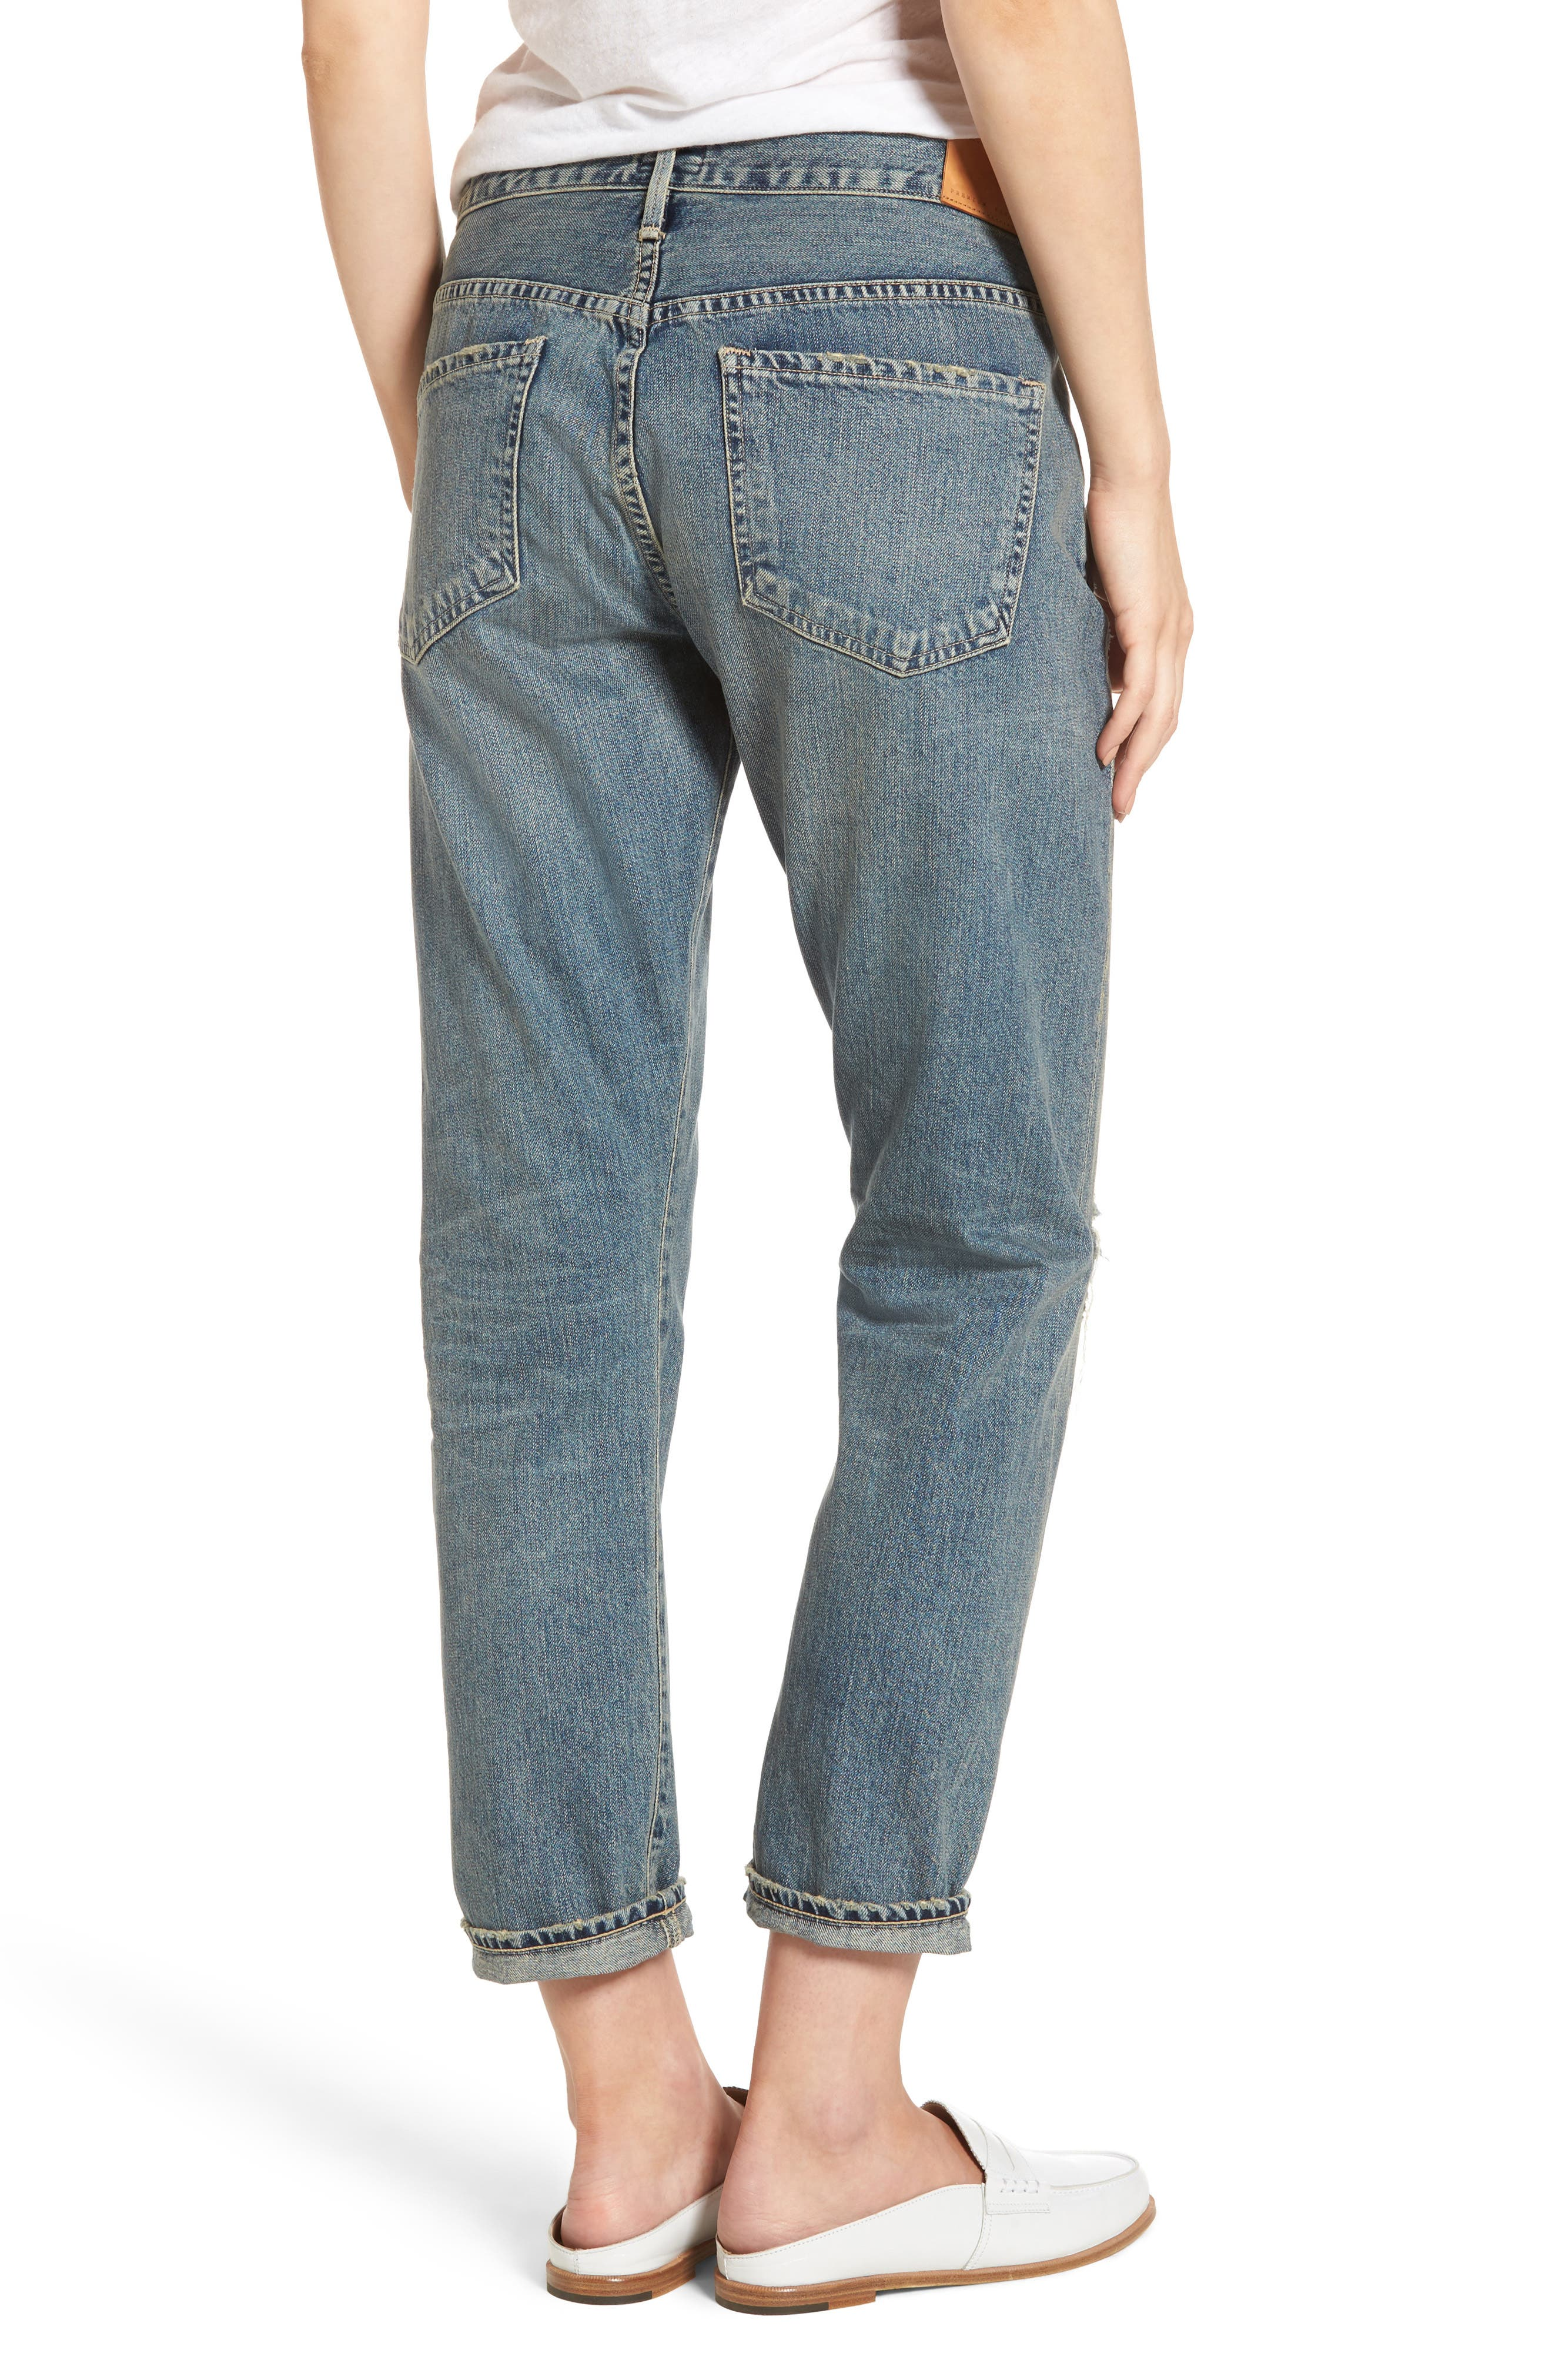 Emerson Ripped Slim Boyfriend Jeans,                             Alternate thumbnail 2, color,                             470